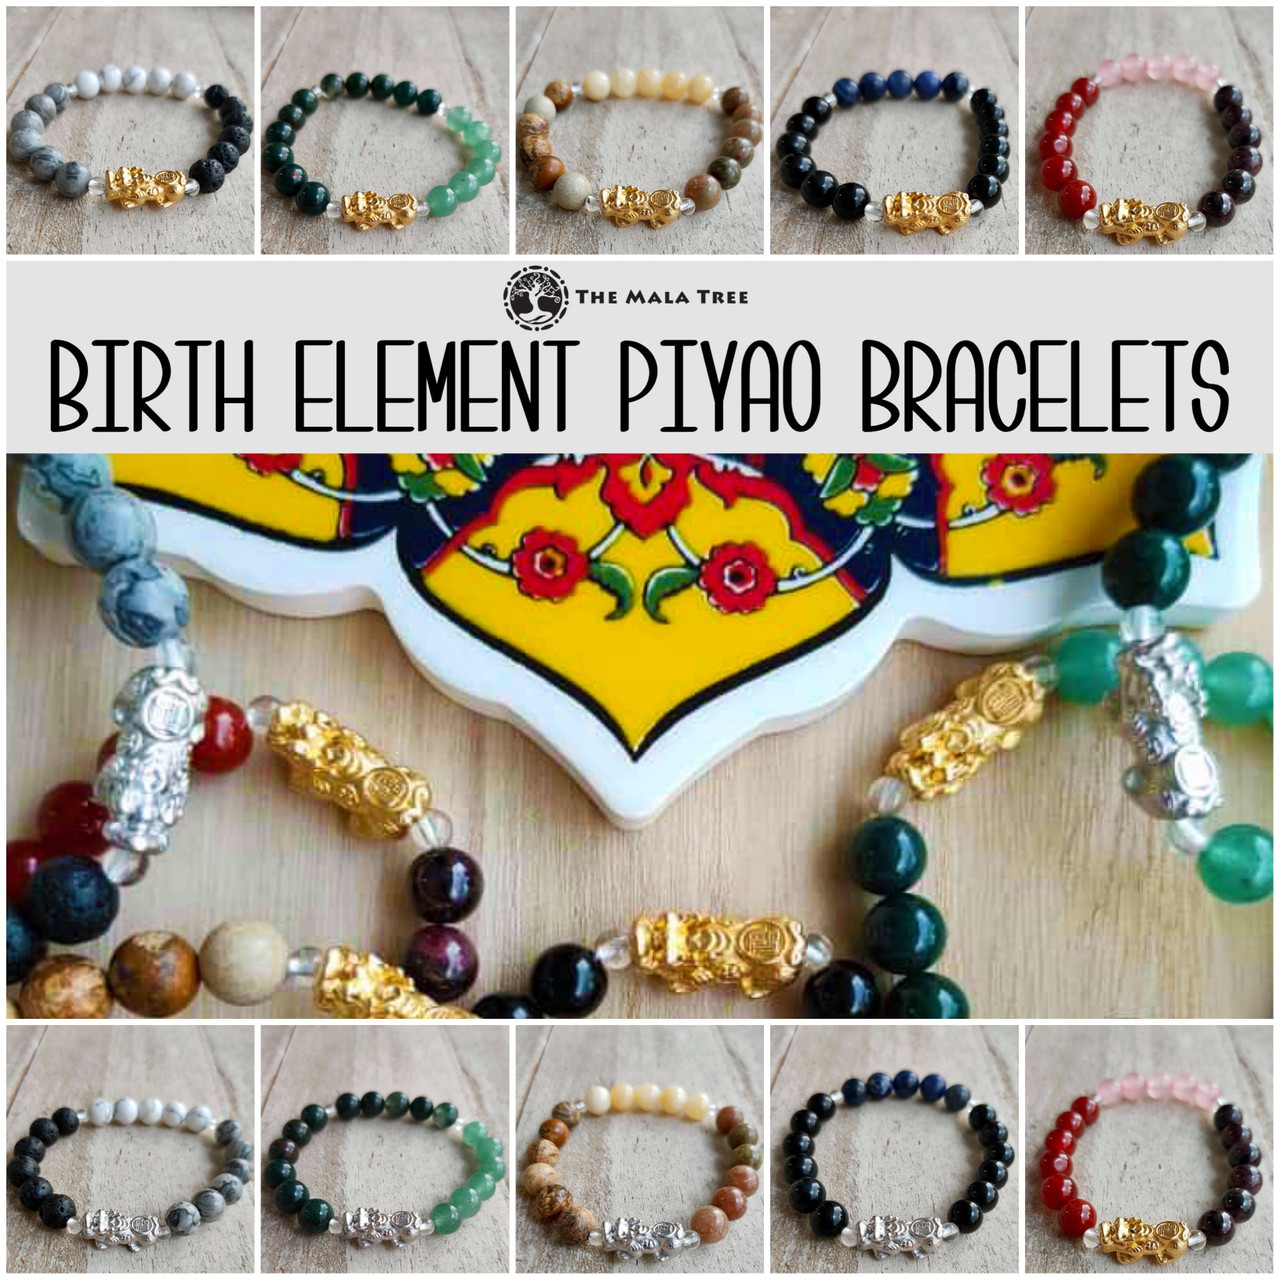 FENG SHUI BIRTH ELEMENT PIYAO BRACELETS